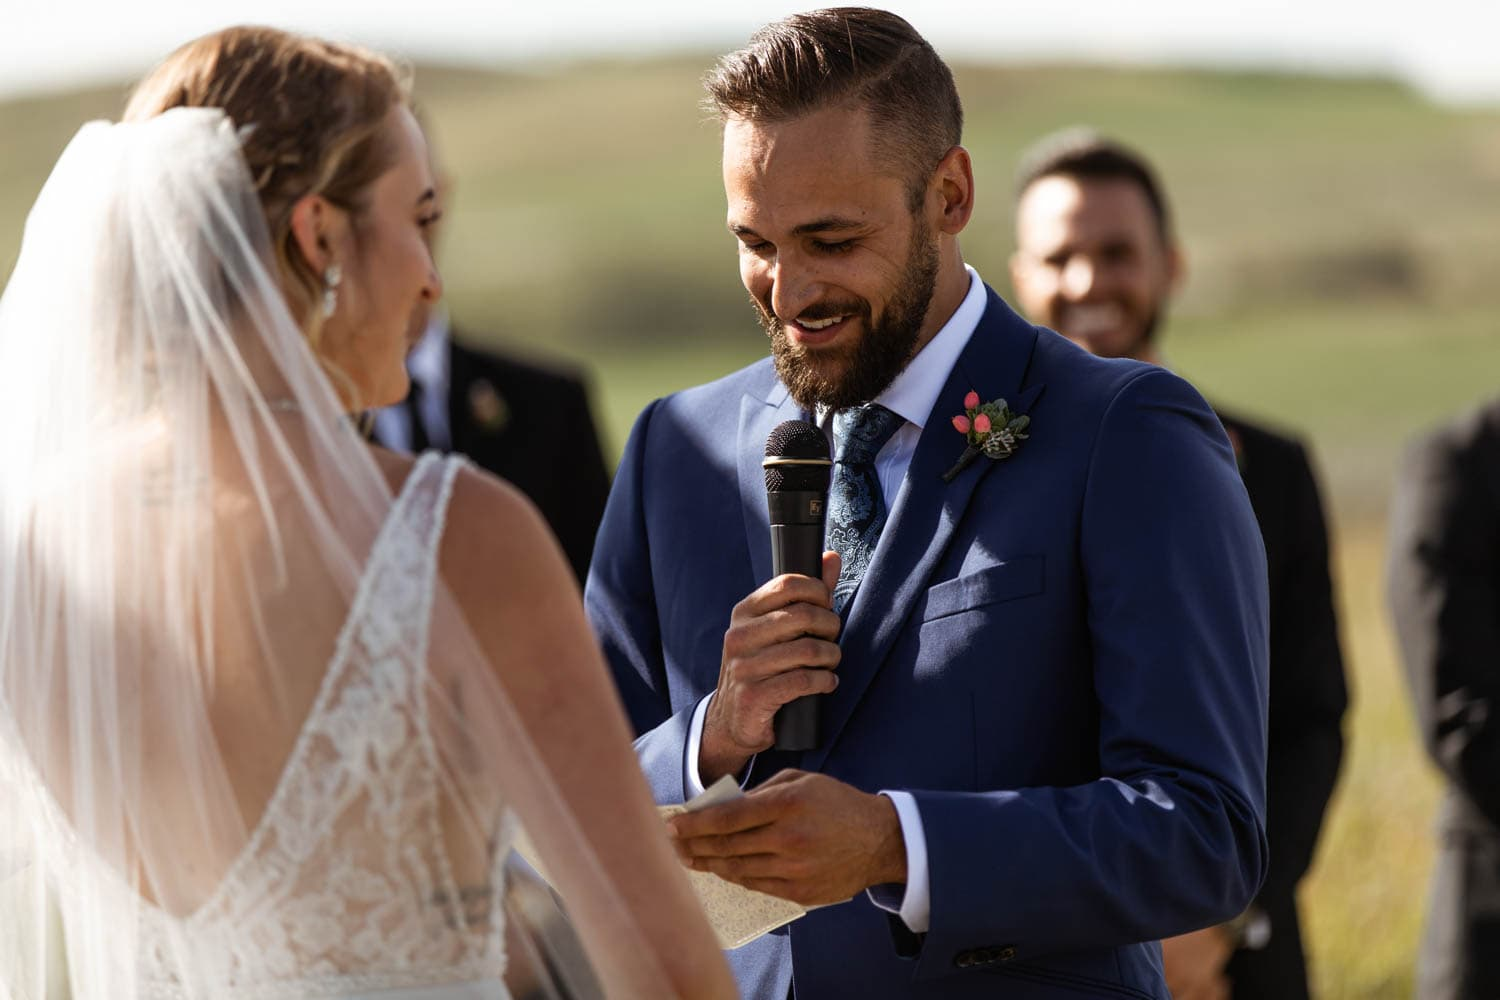 groom reading vows at wedding ceremony